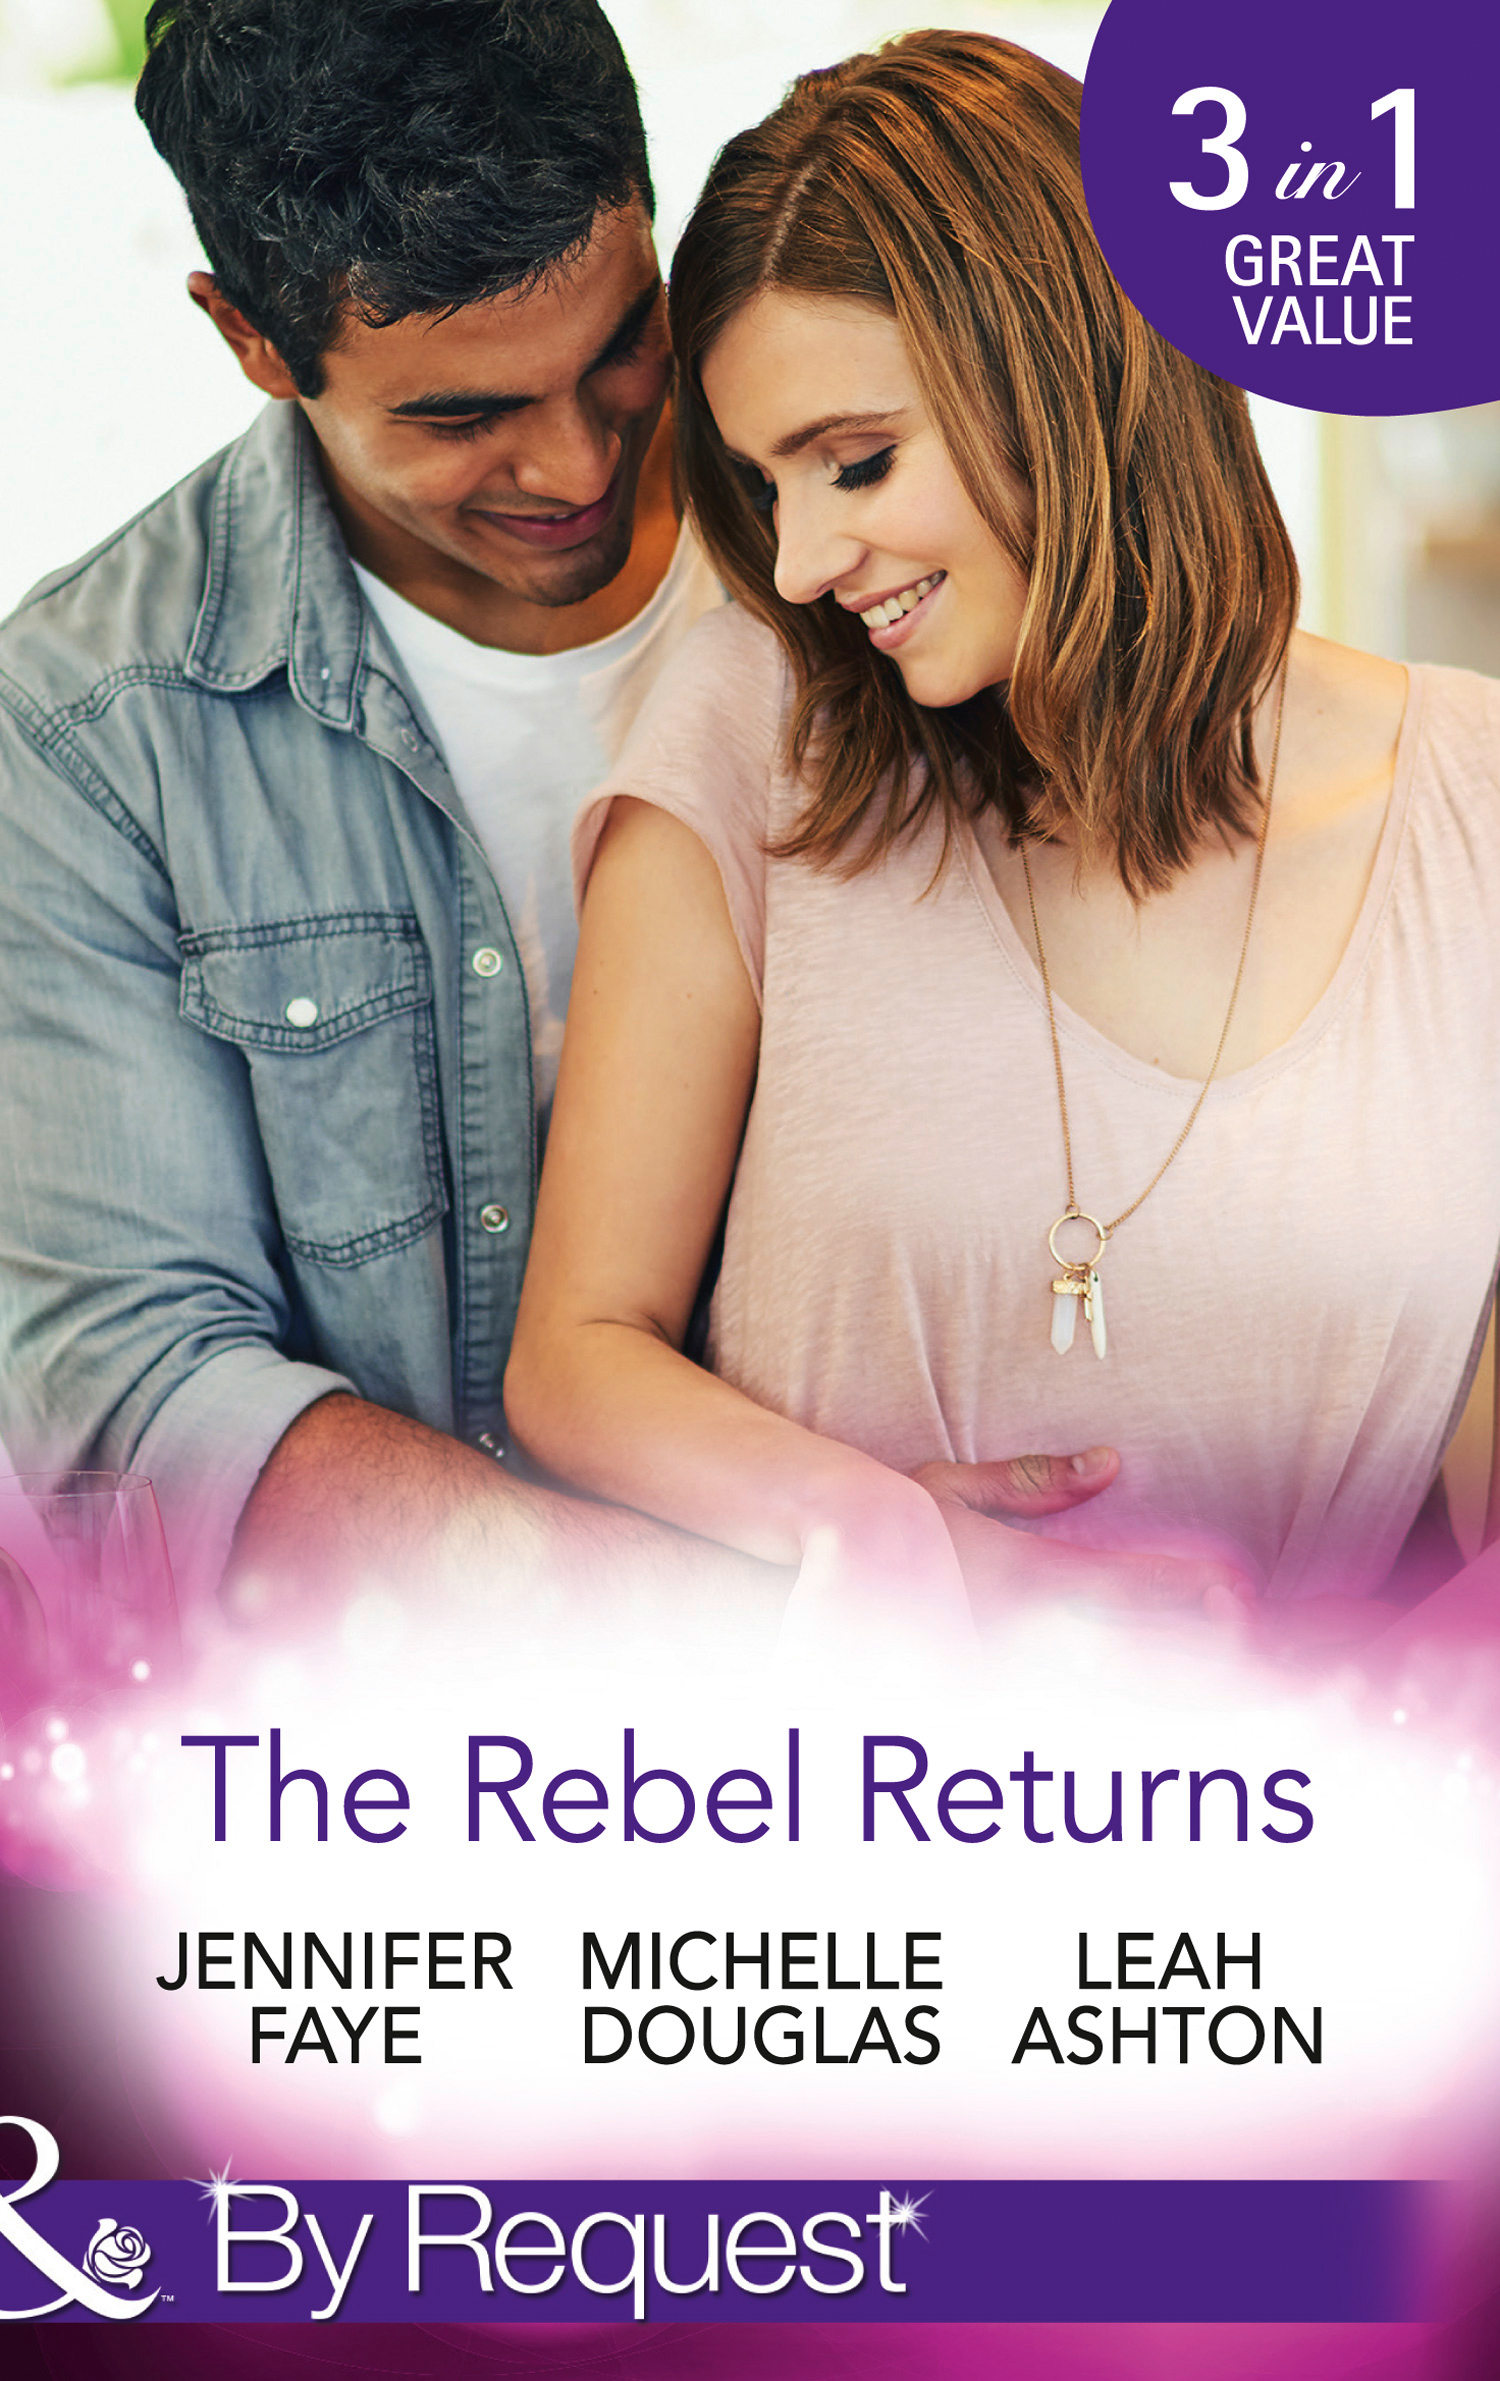 The Rebel Returns